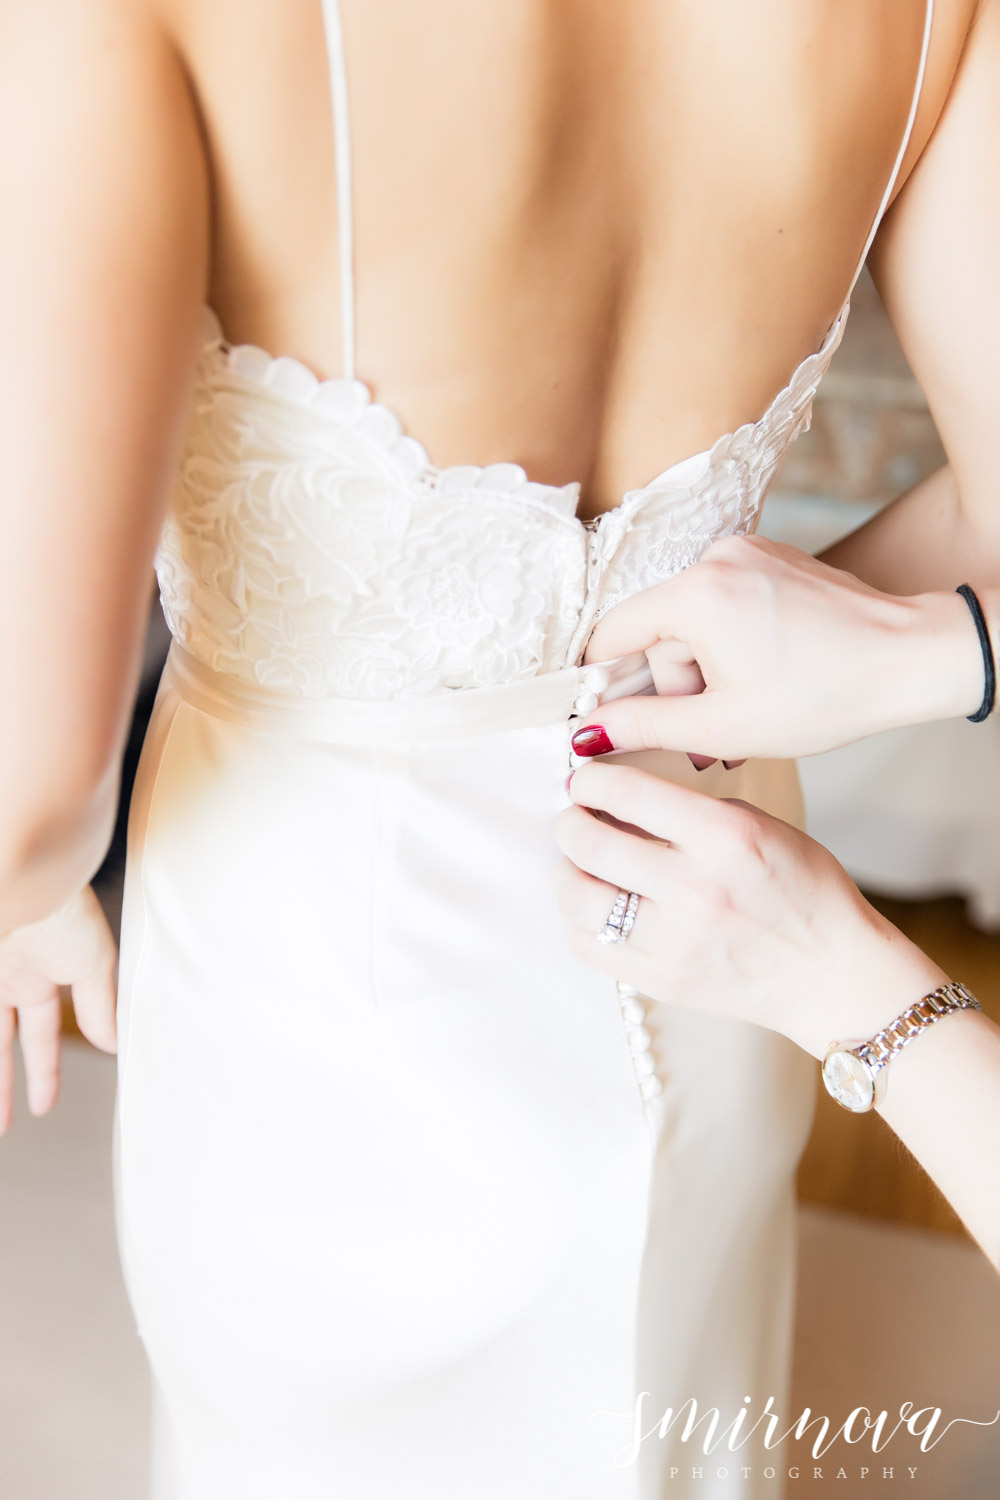 wedding dress details Smirnova Photography by Alyssa